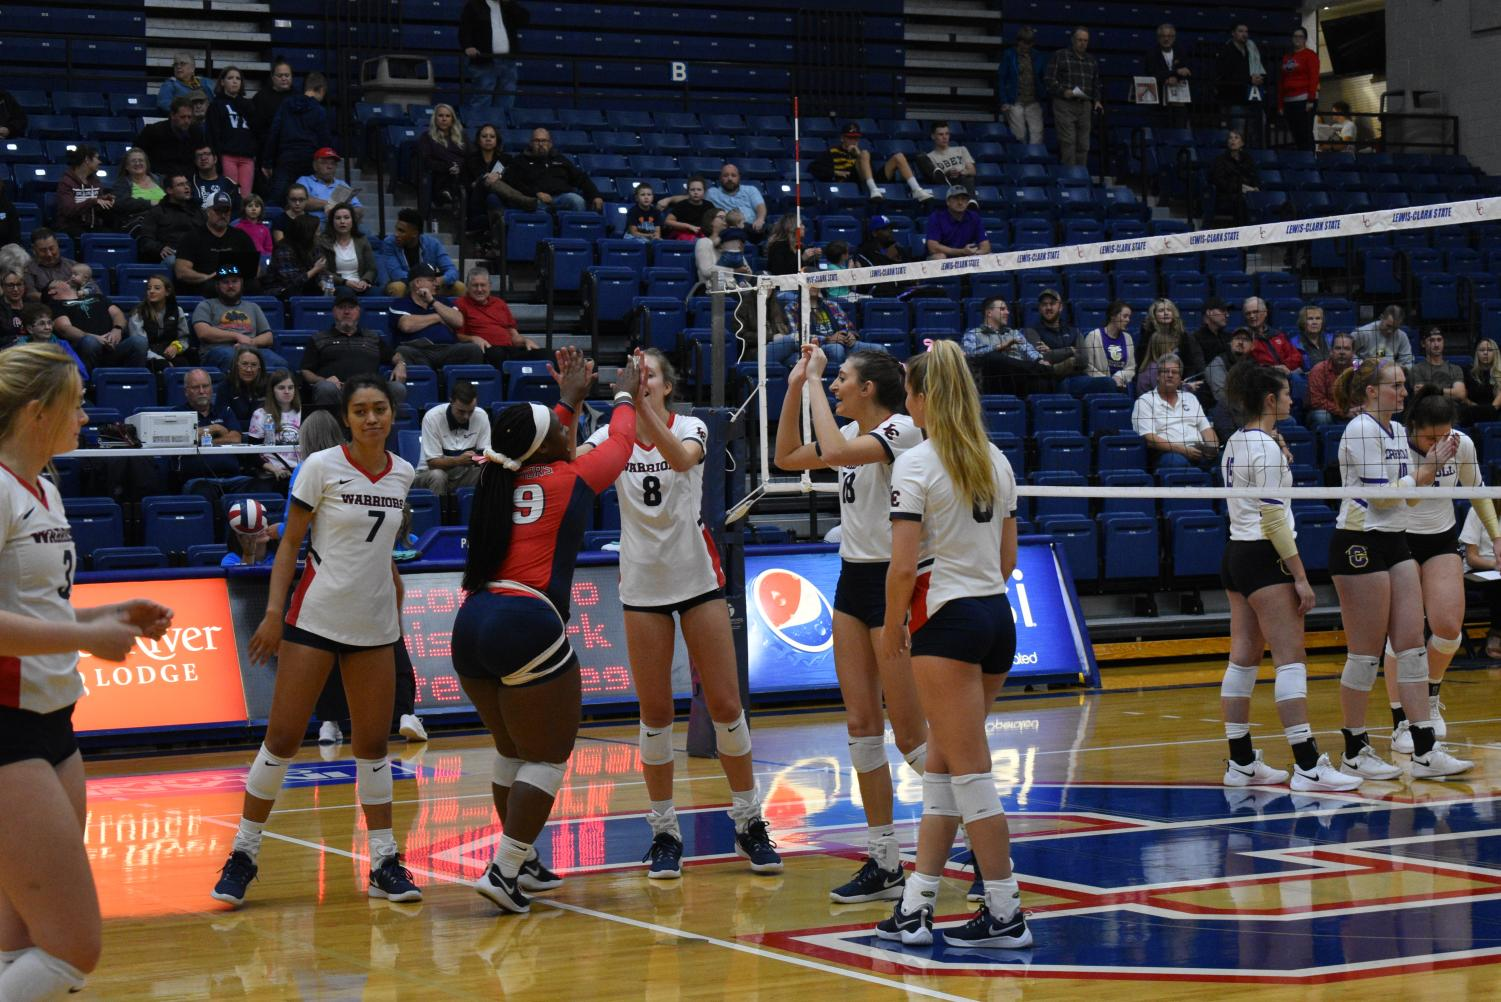 The Warrior volleyball team swept Carroll College Oct. 4 during the homecoming match, the final score was 3-0. They also dominated during the Oct. 5 match against Montana Tech winning 3-1 to punctuate Homecoming weekend with a powerful triumph.